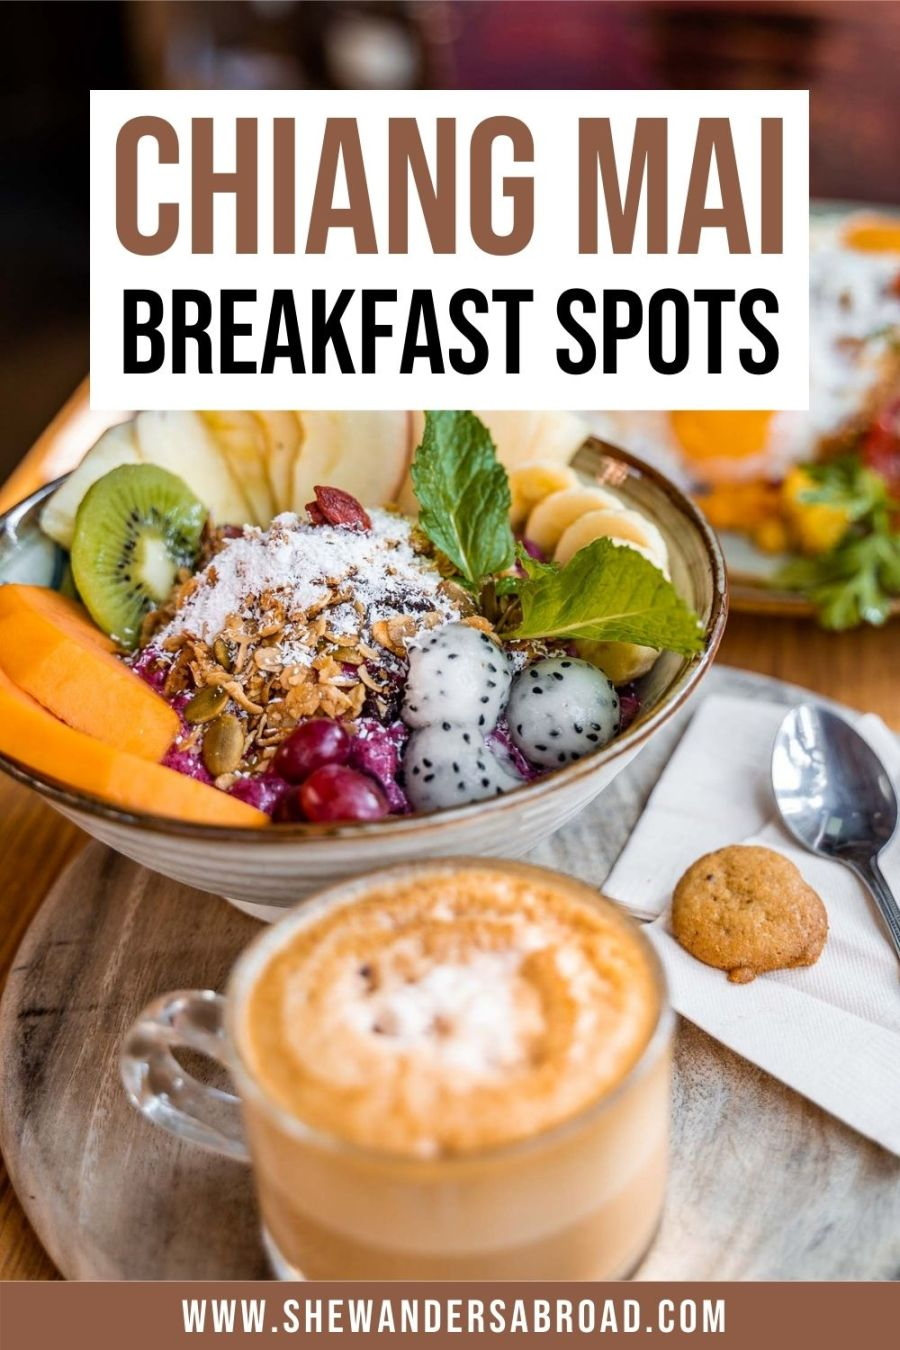 Breakfast in Chiang Mai: 11 Best Cafes You Need to Try